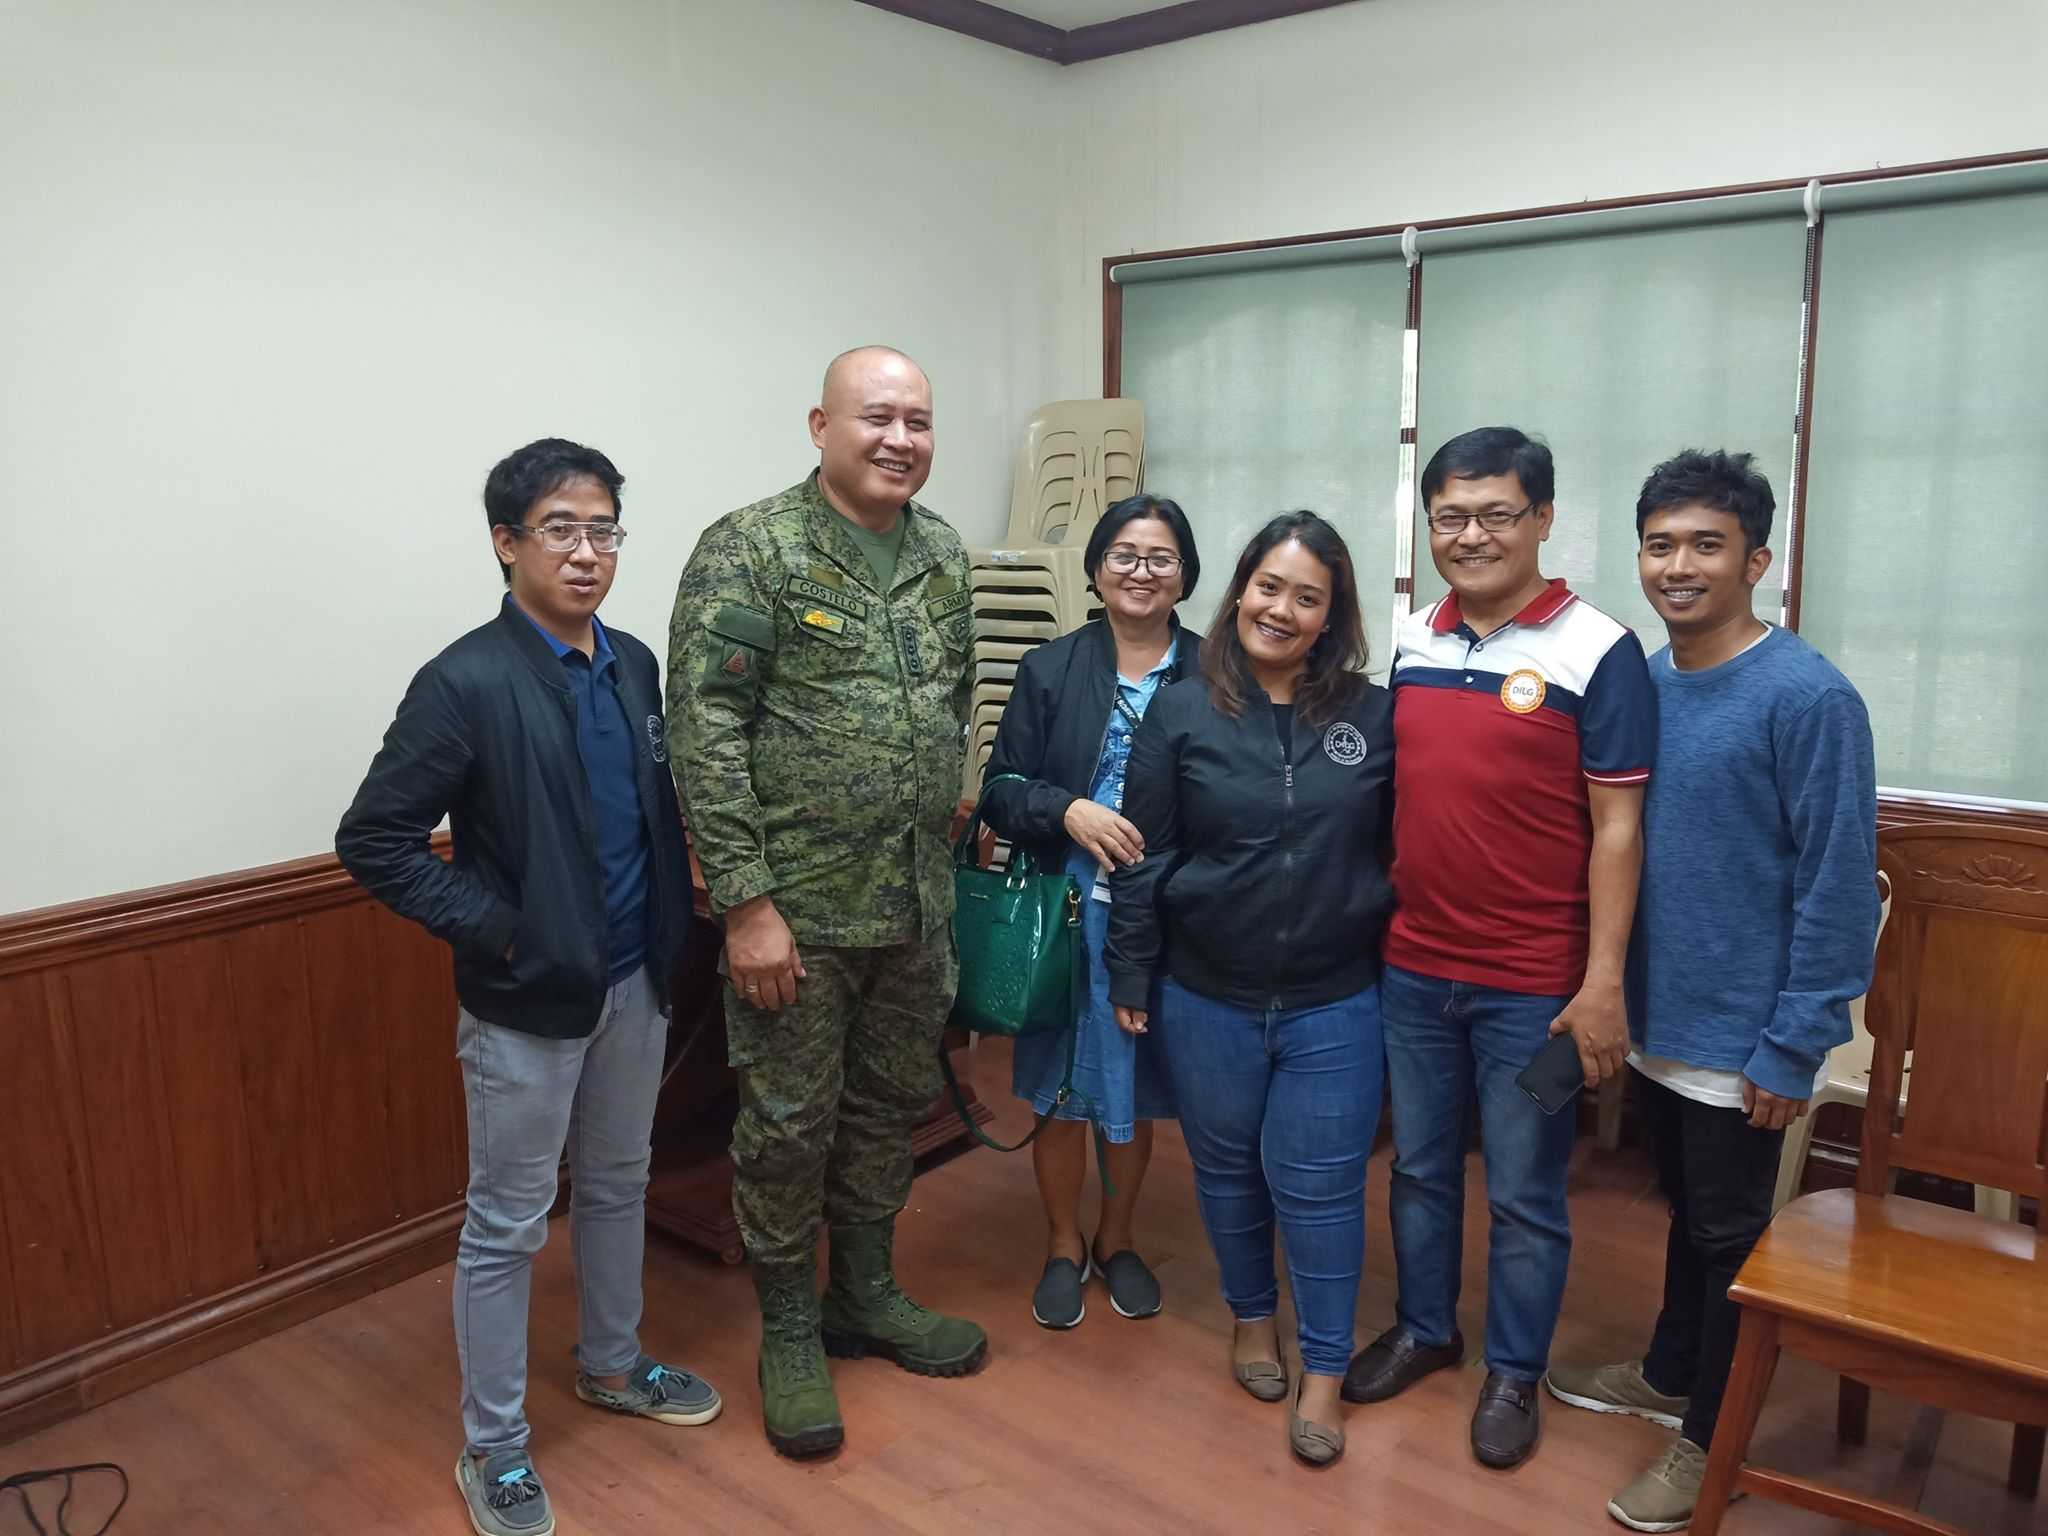 DILG AURORA AS PTF SECRETARIAT ALONG WITH COL ANDREW D. COSTELO INF GSC PA BRUGADE COMMANDER 70RD BRIGADE PA DURING THE THE PTF MEMBERS HEADED BY GOV. GERARDO A. NOVERAS ON THE JO